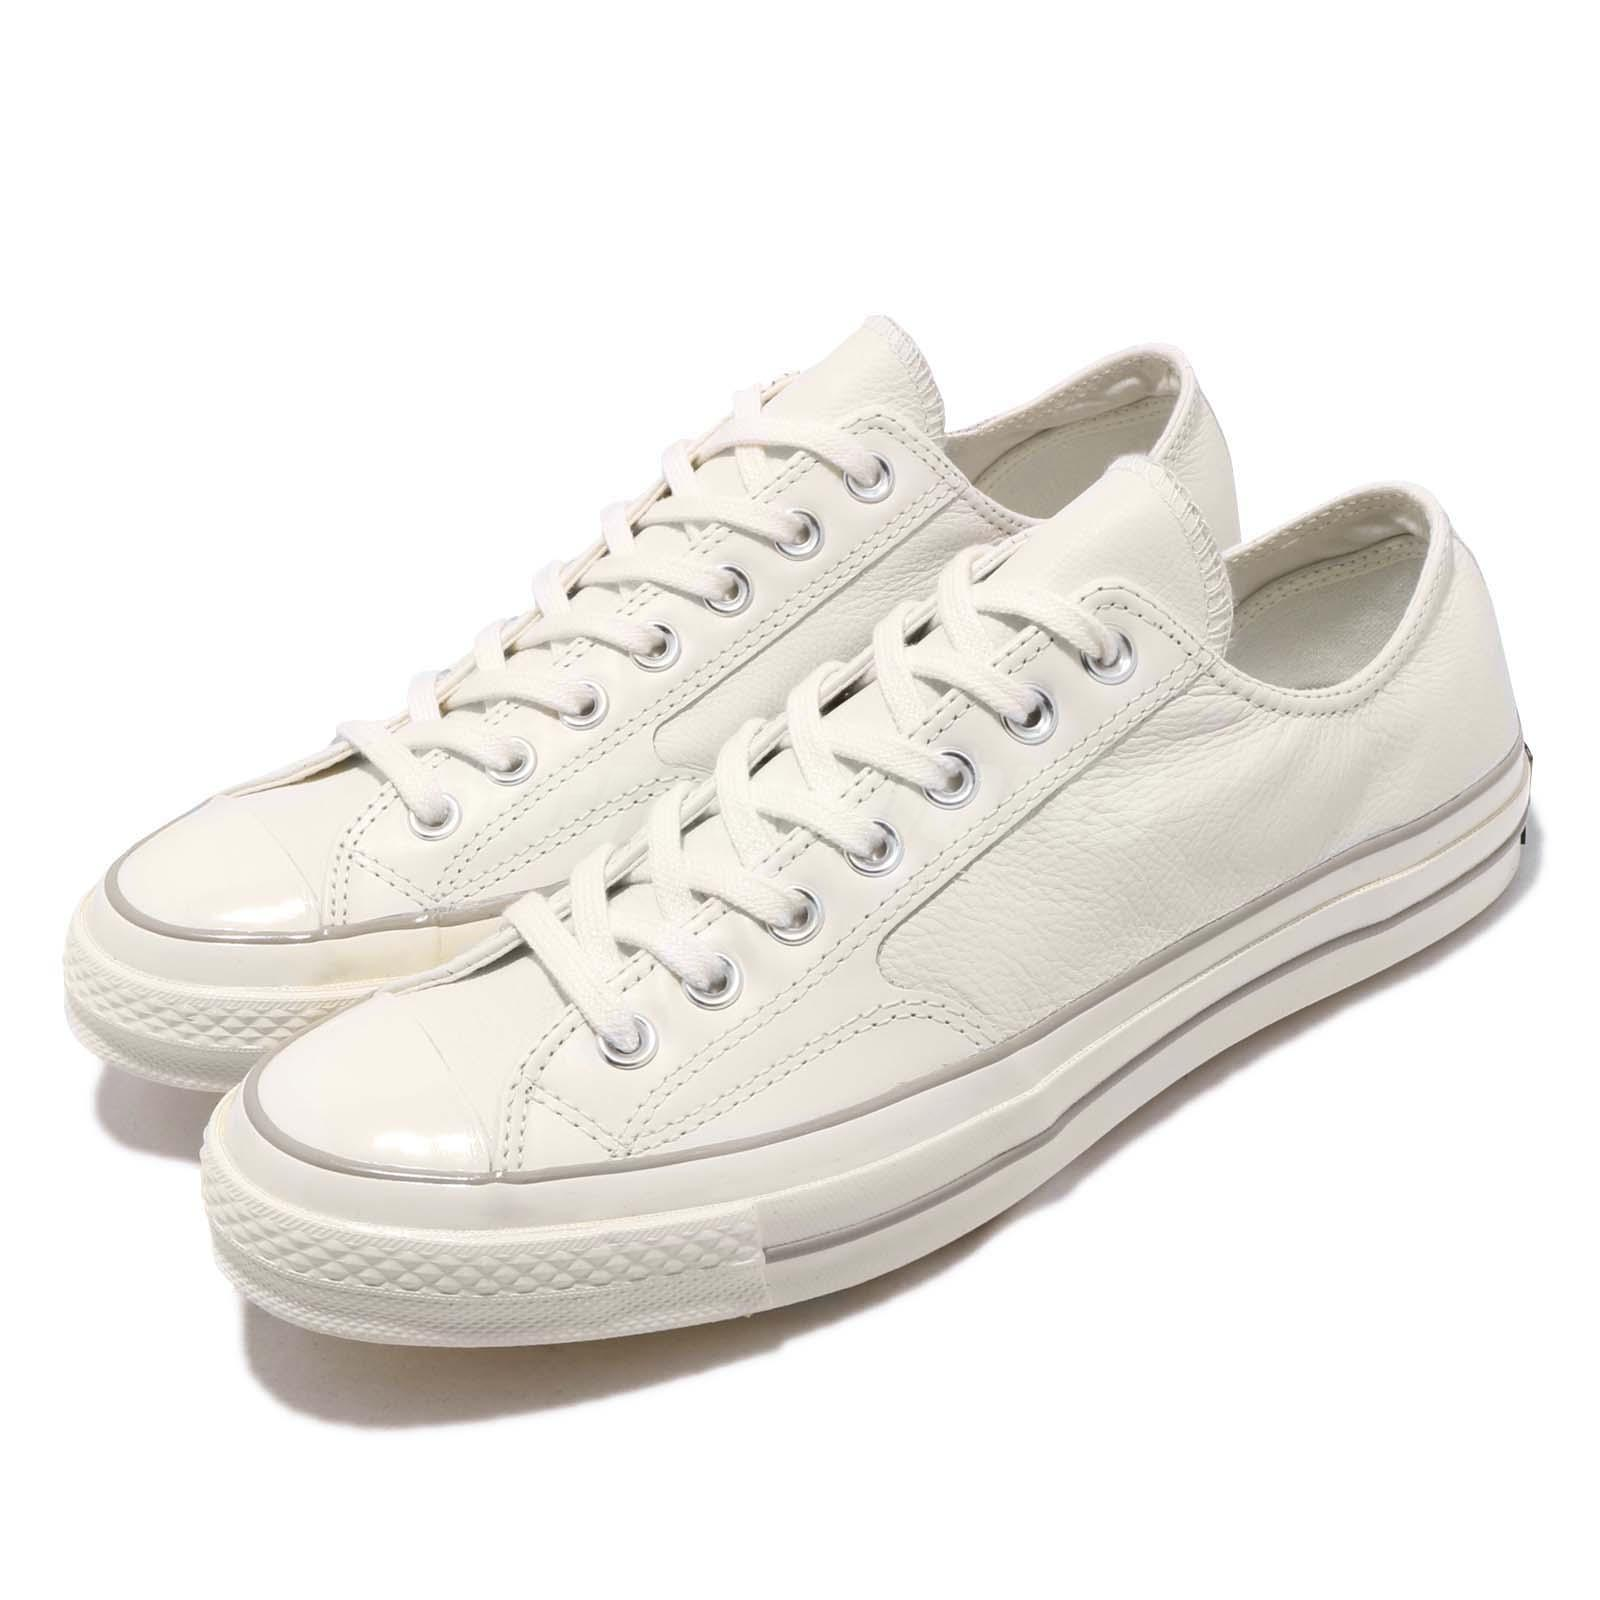 3bd1527b8fde Details about Converse First String Chuck Taylor All Star 70 OX Egret Men  Women Shoes 163329C